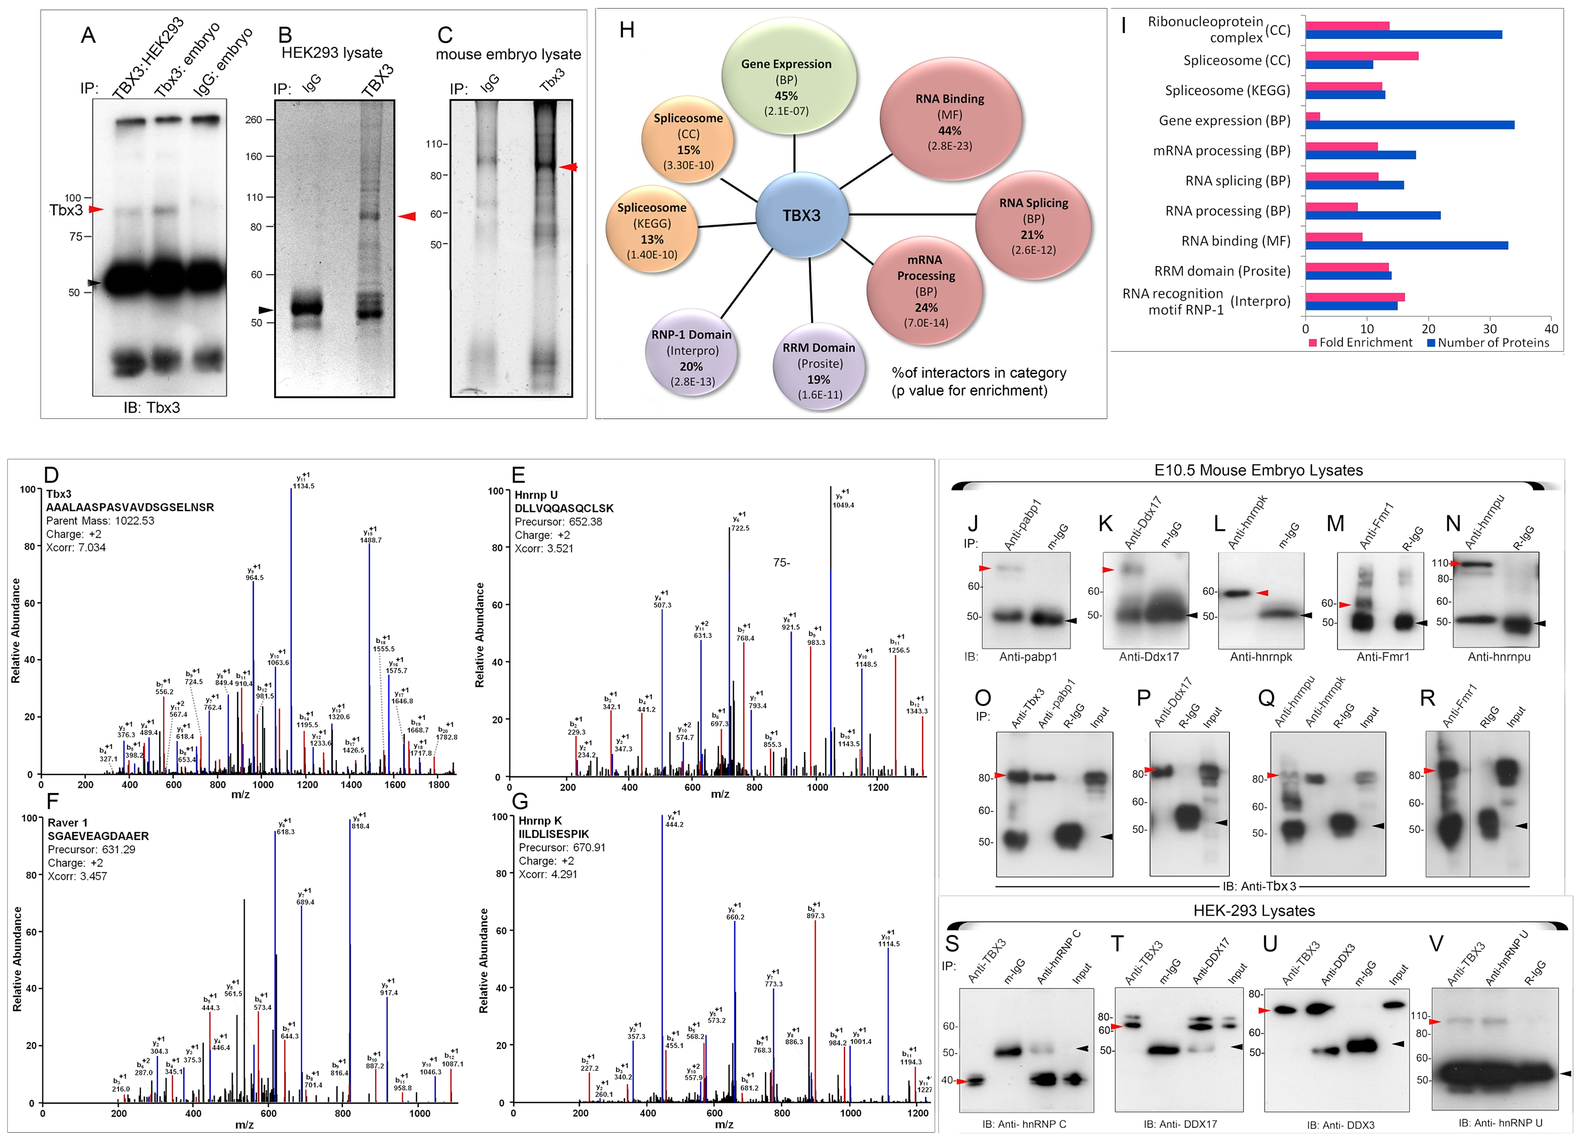 Splicing factors and RNA BPs are over-represented in the Tbx3 interactome identified by MS and are validated co-immunoprecipitation.